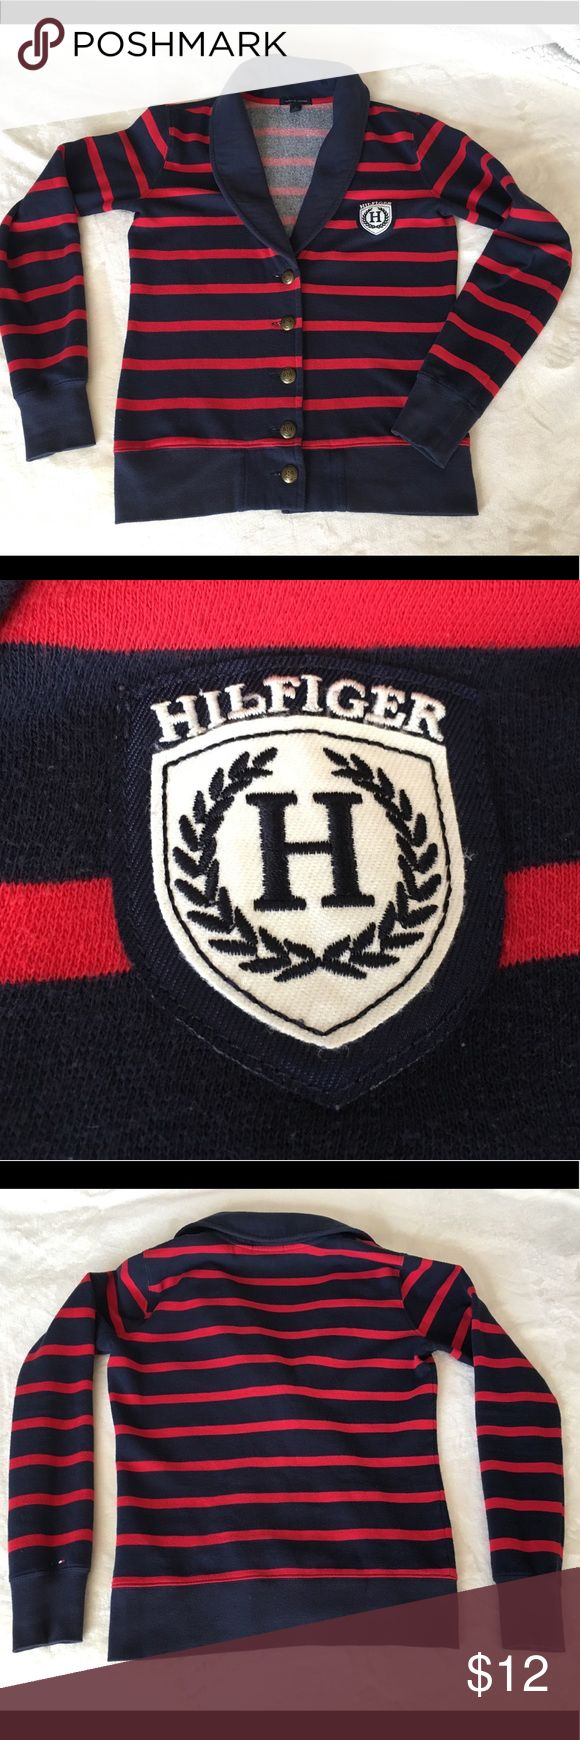 Tommy Hilfiger cardigan Tommy Hilfiger cardigan, size XS, dark blue and red stripes. Used, but in good condition. Tommy Hilfiger Sweaters Cardigans